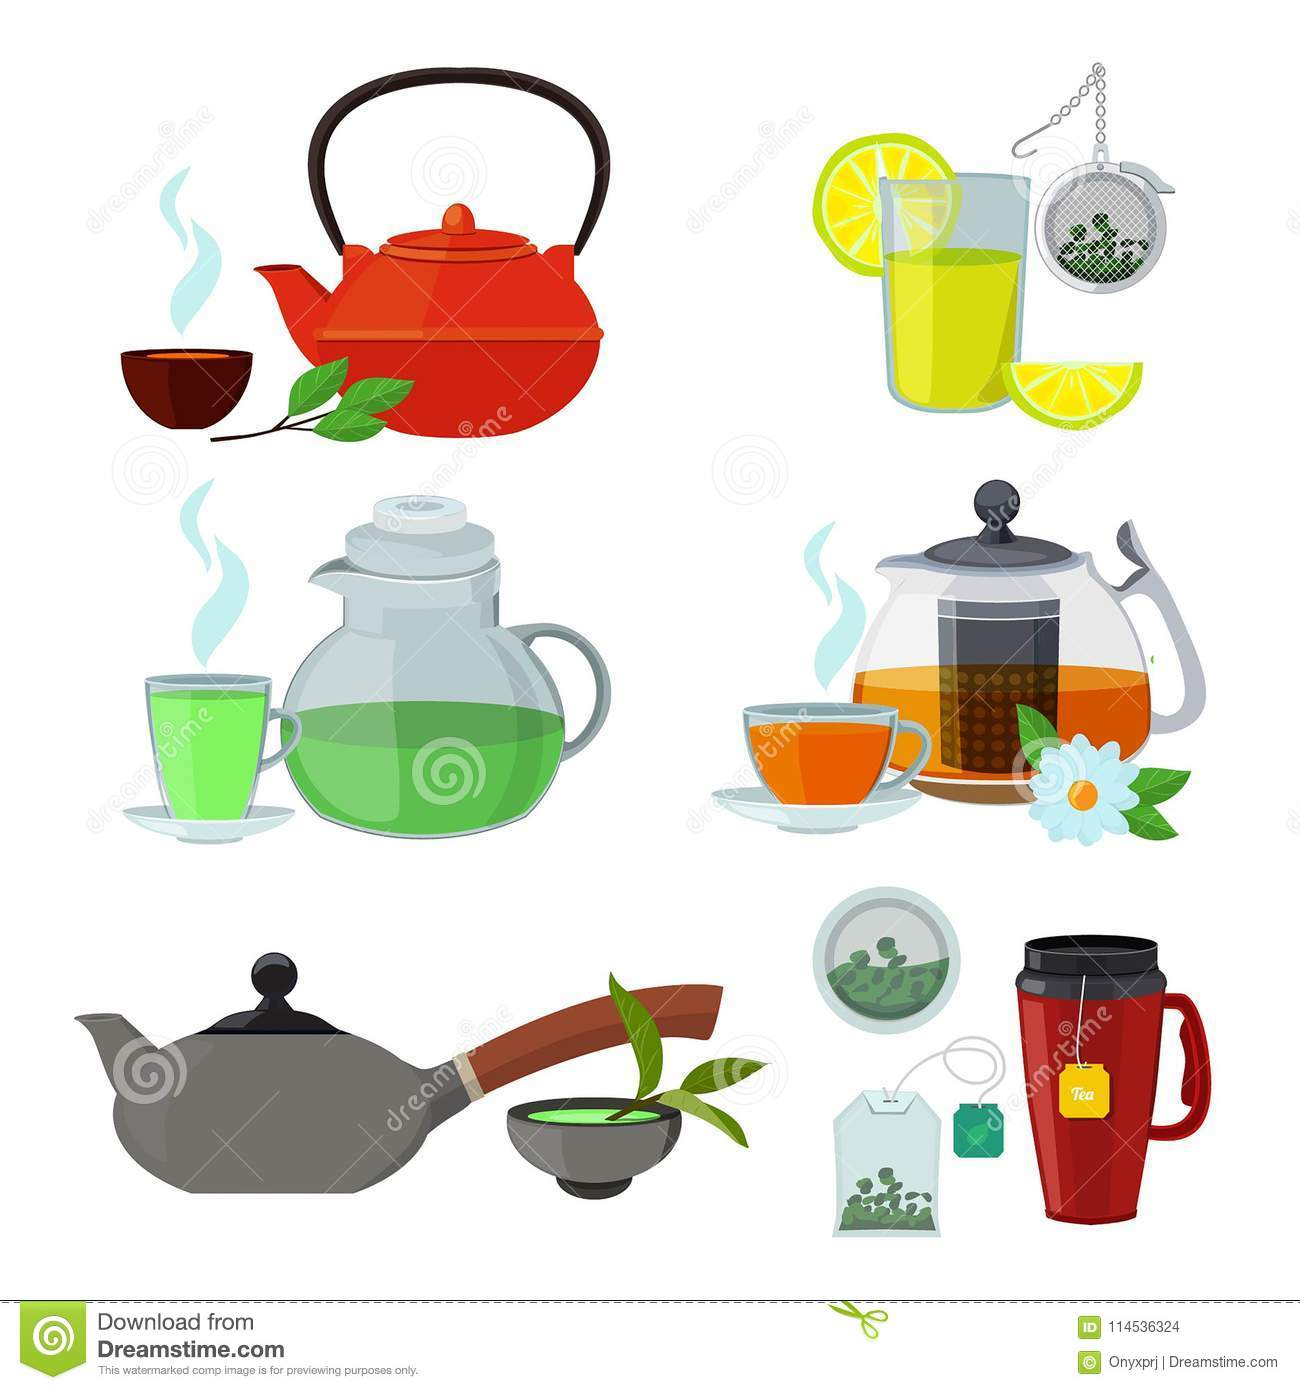 Illustrations Of Cups And Kettles For Different Types Of Tea Stock